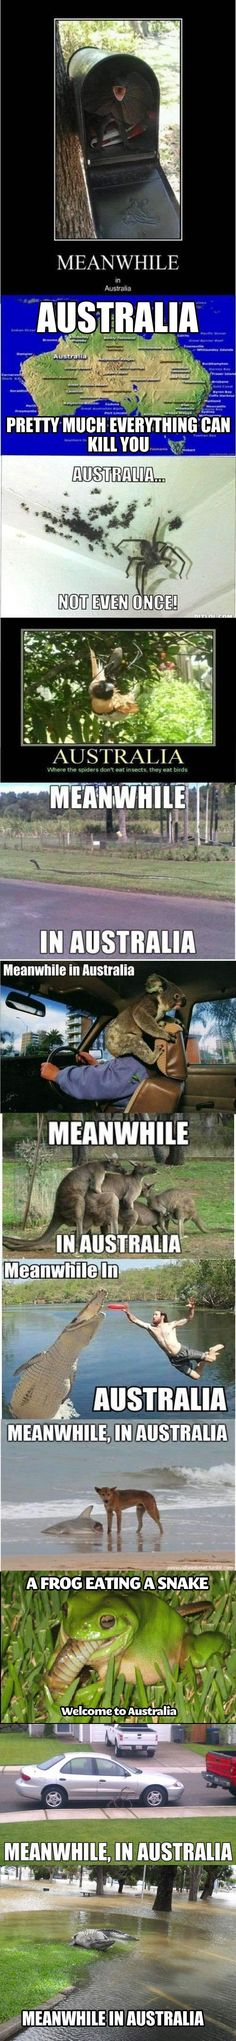 Remind me to never go to Australia.......